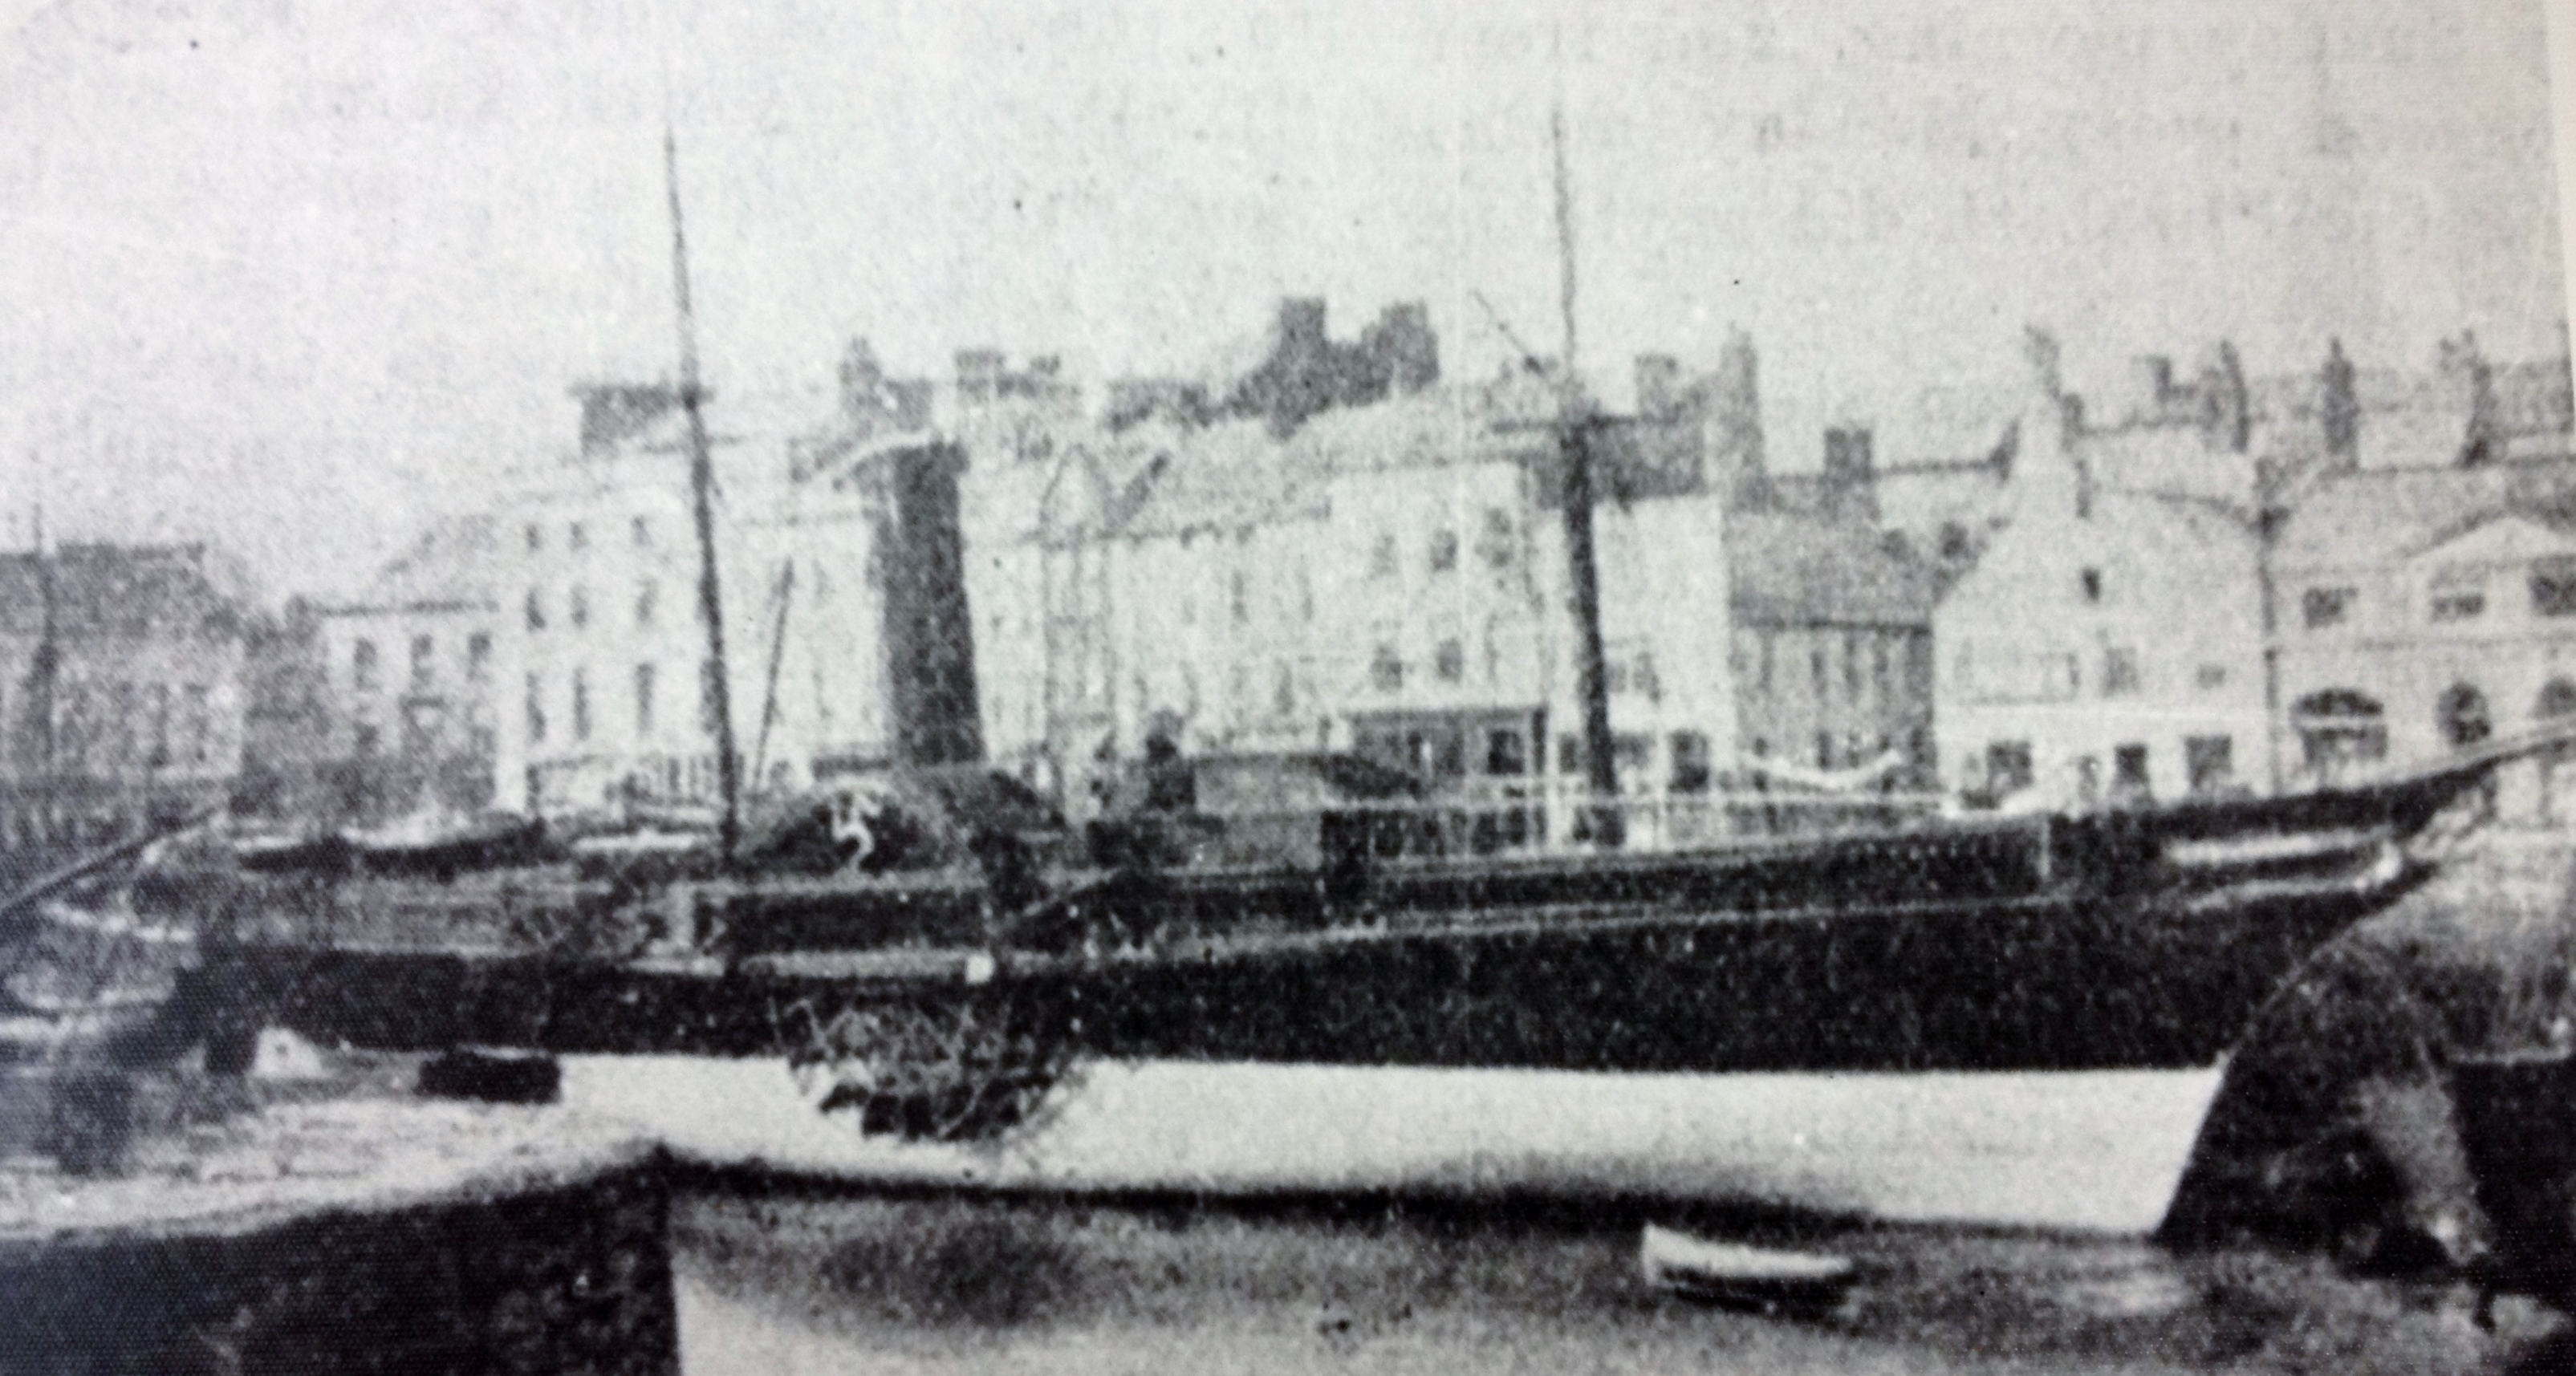 Tynwald berthed at the Coffee Palace Berth in Douglas, Isle of Man. Unknown photographer and date.